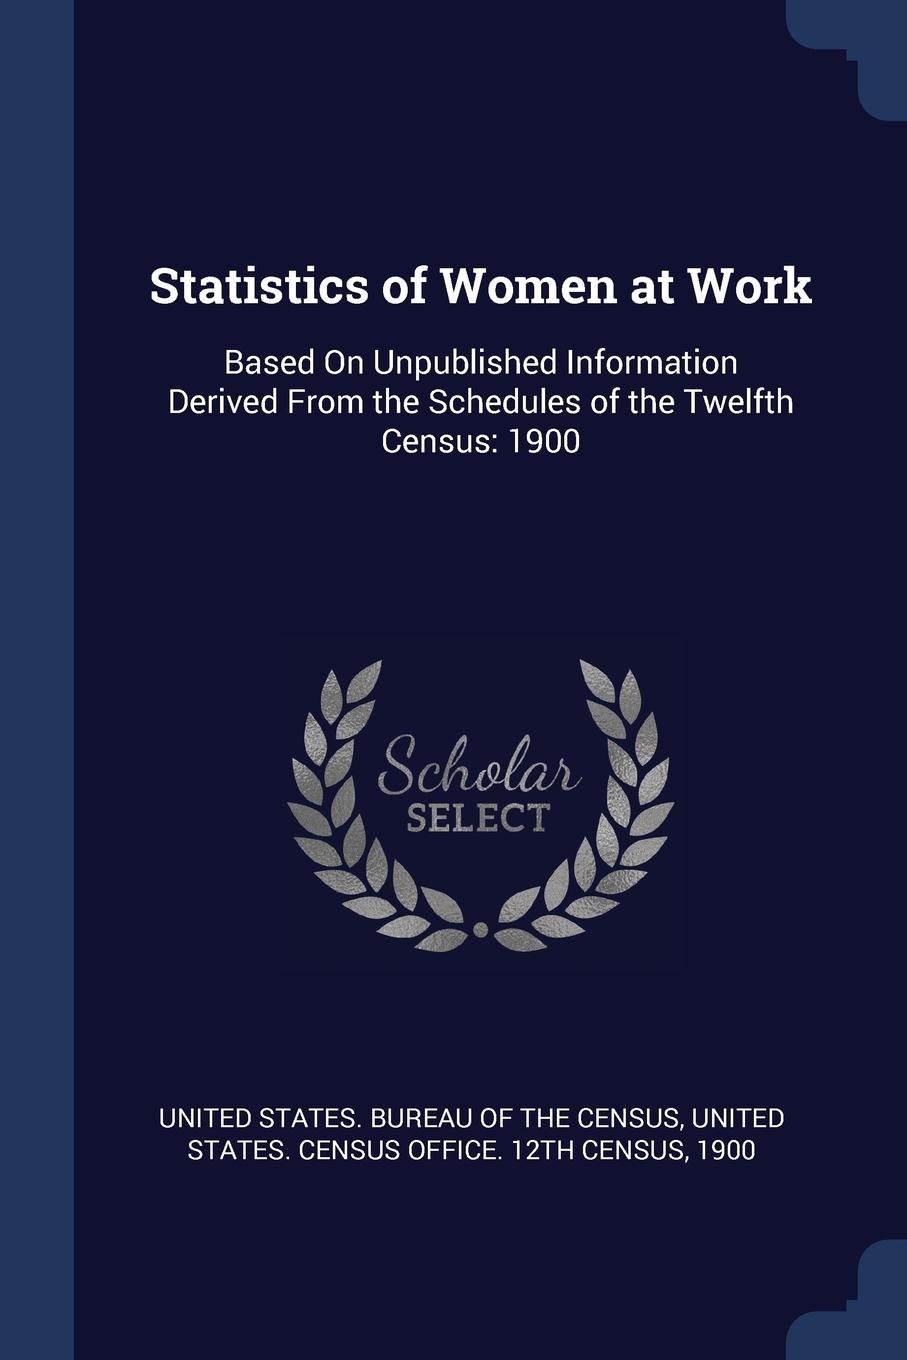 Statistics of Women at Work. Based On Unpublished Information Derived From the Schedules Twelfth Census: 1900